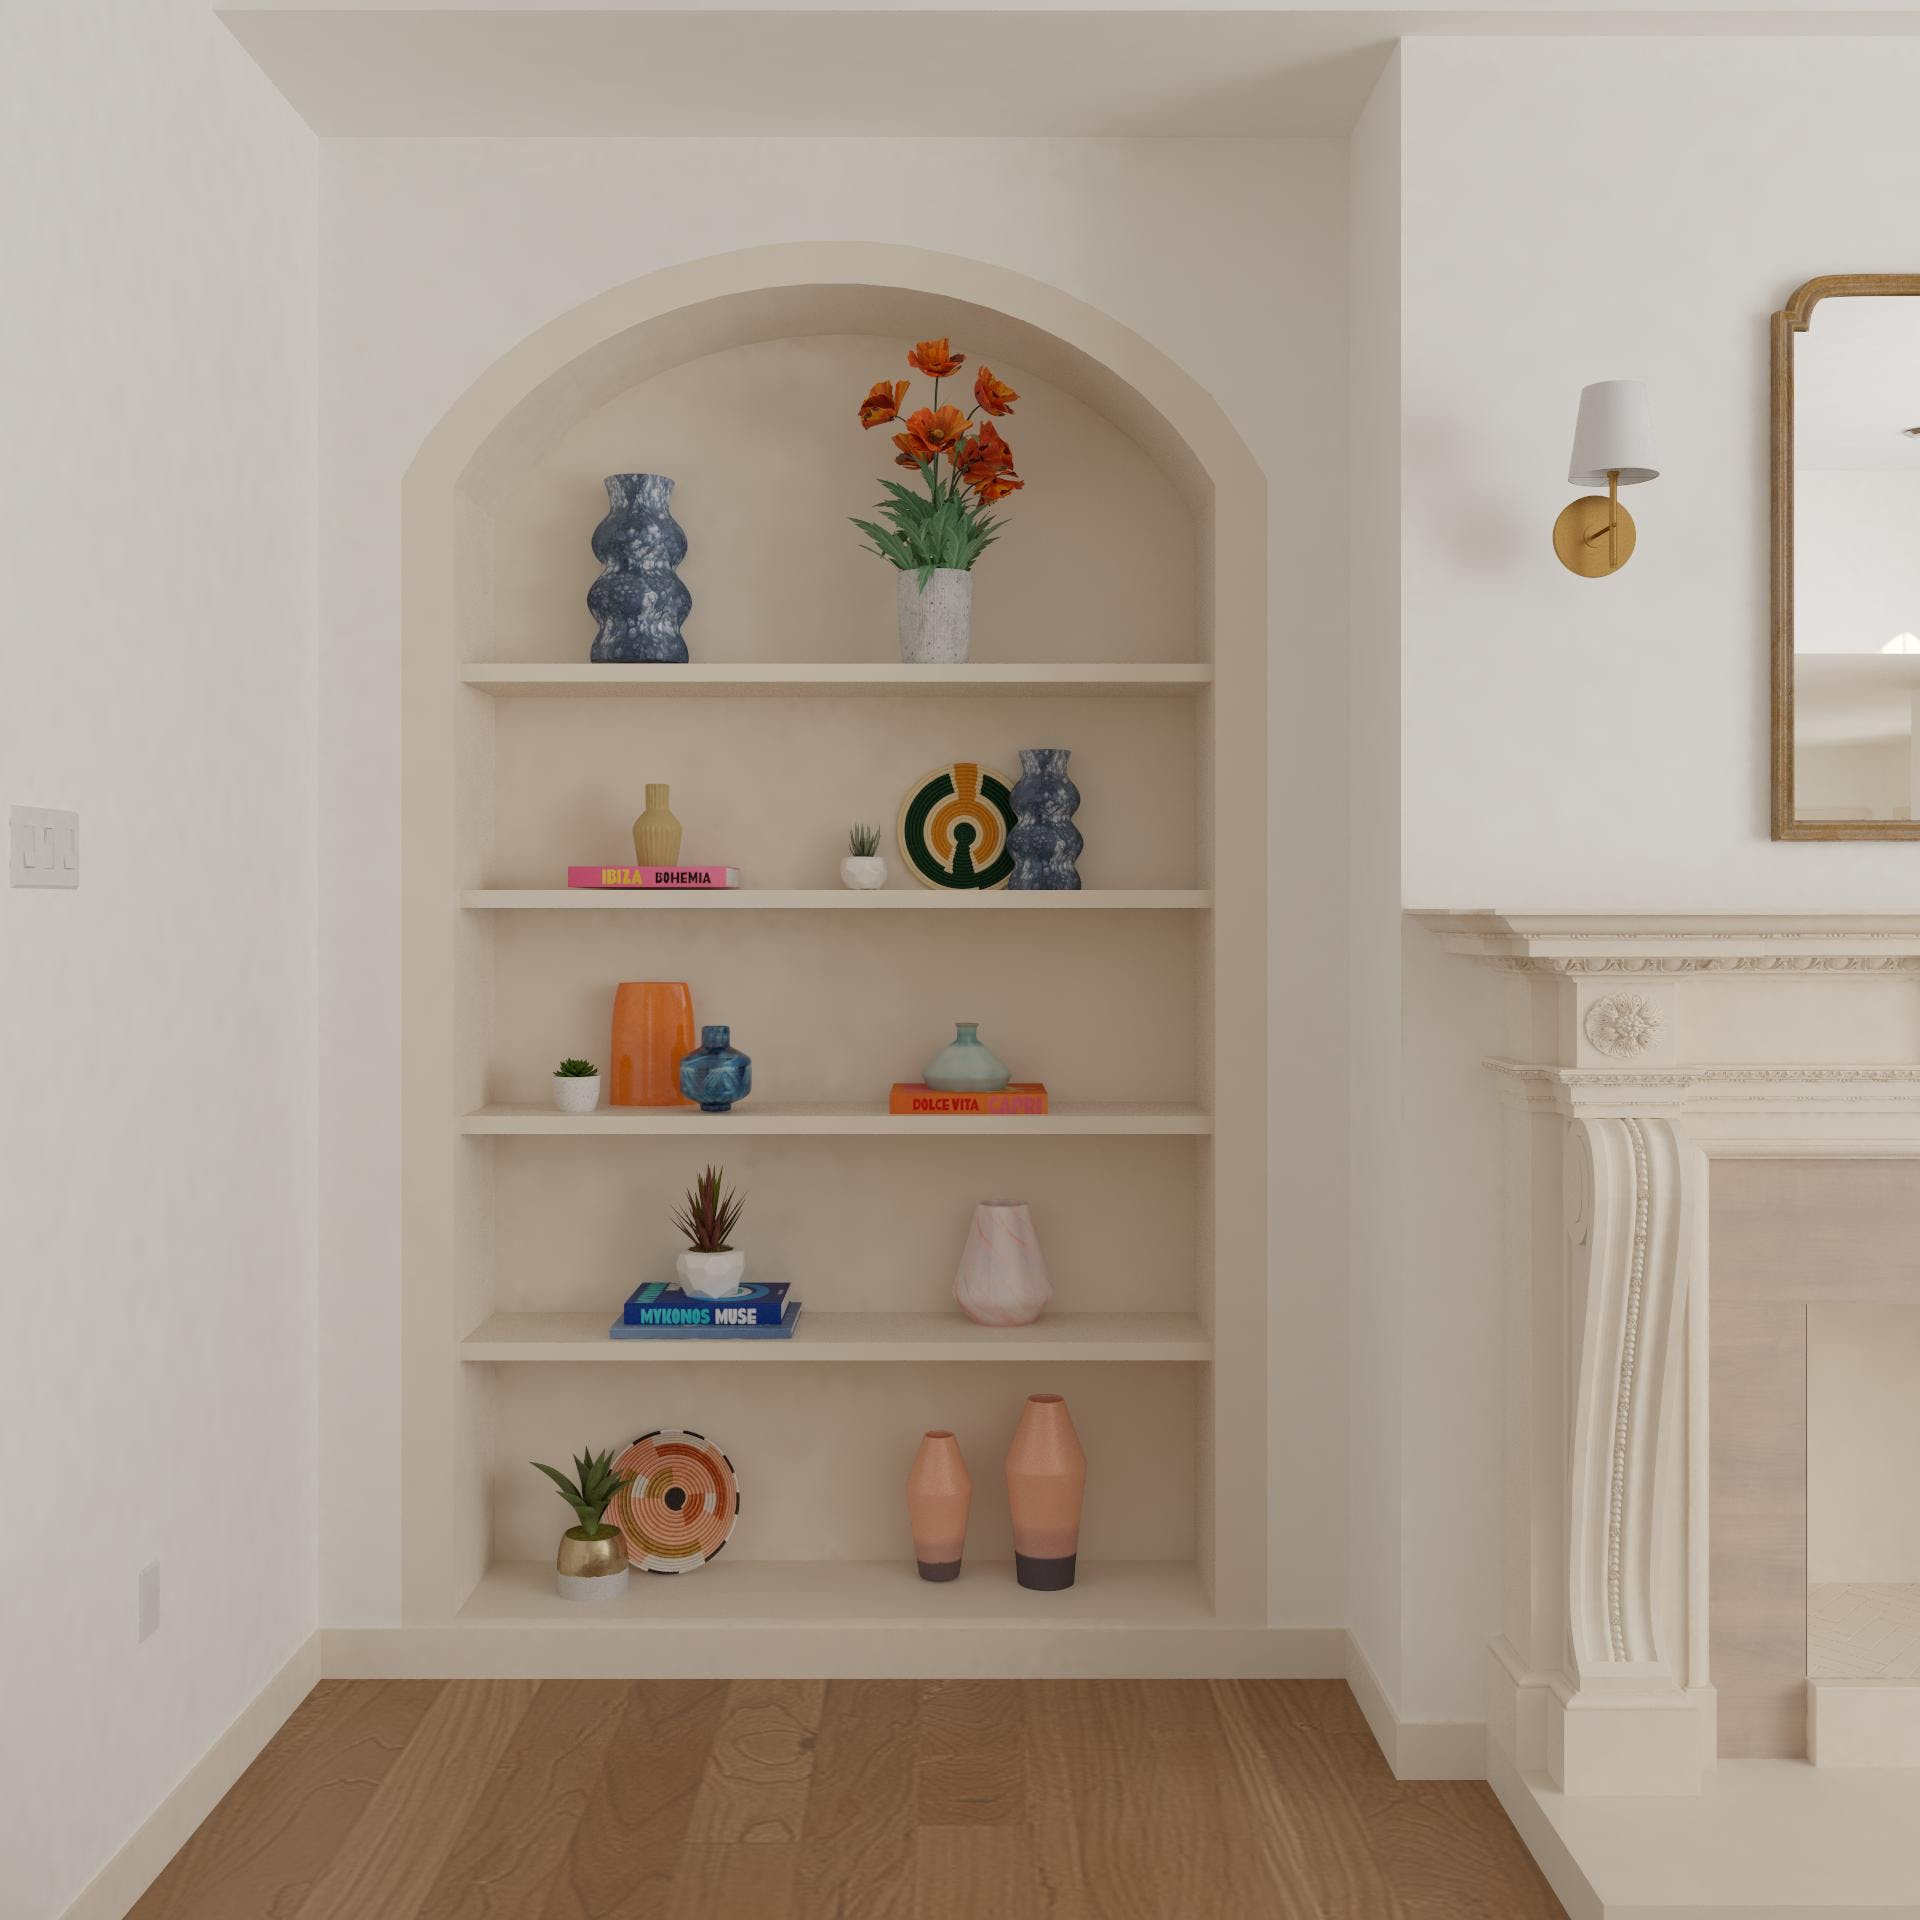 Shelves With Colorful Accents